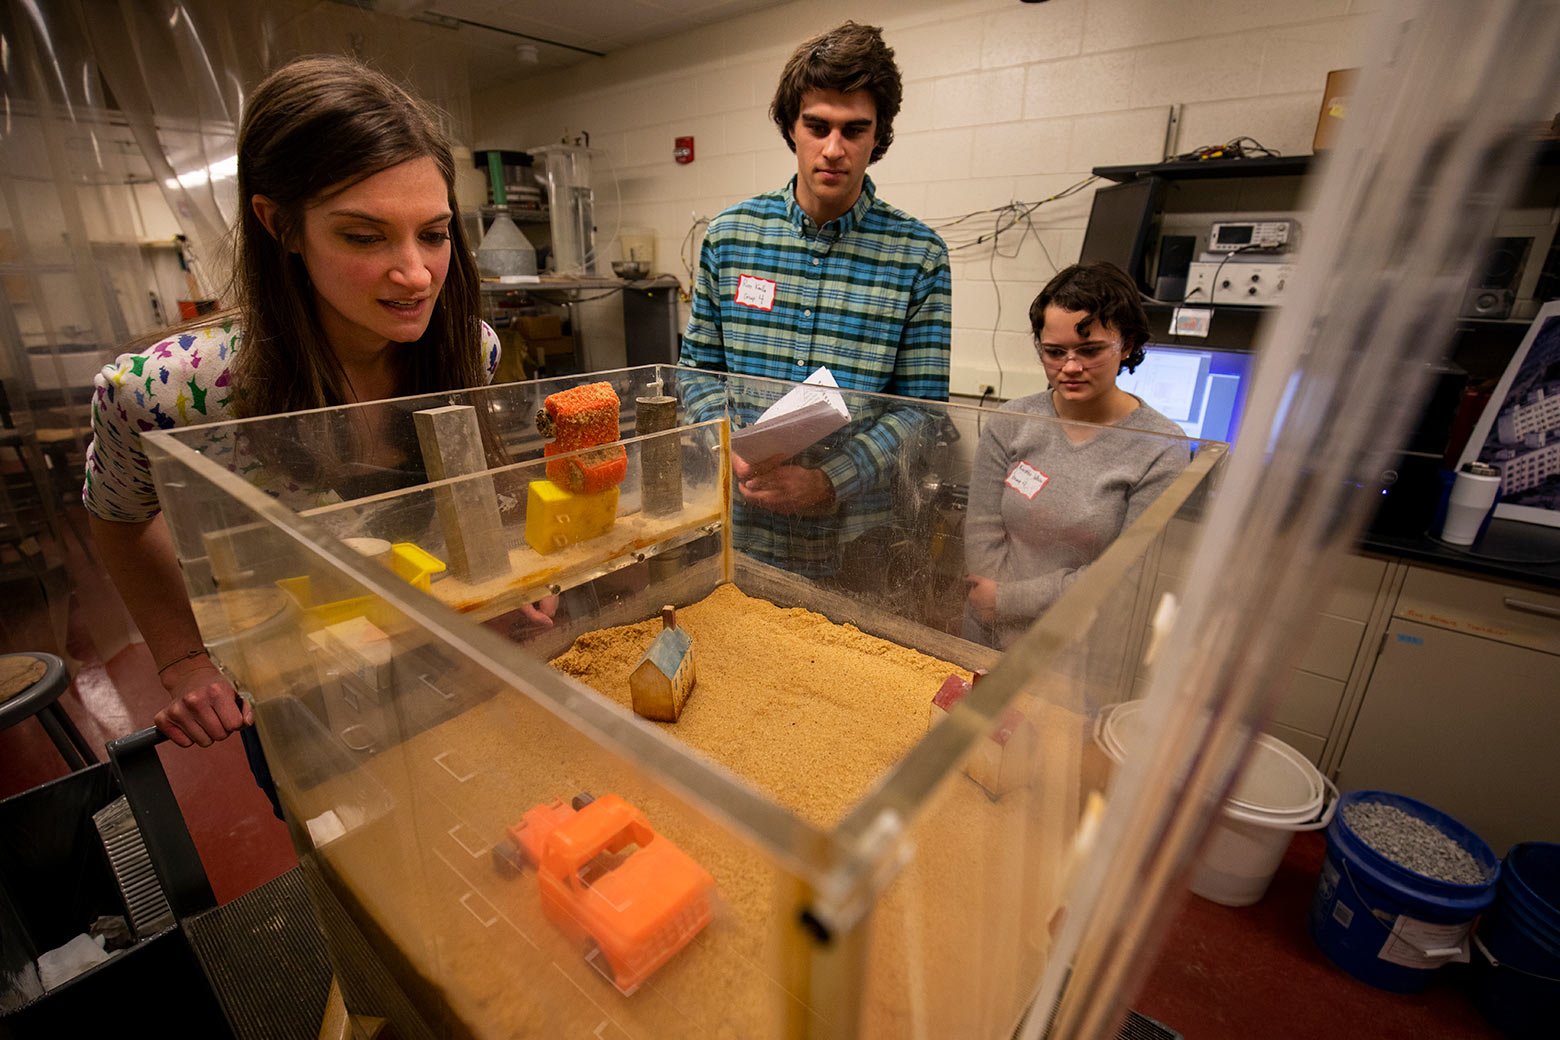 Students view lab simulation in process